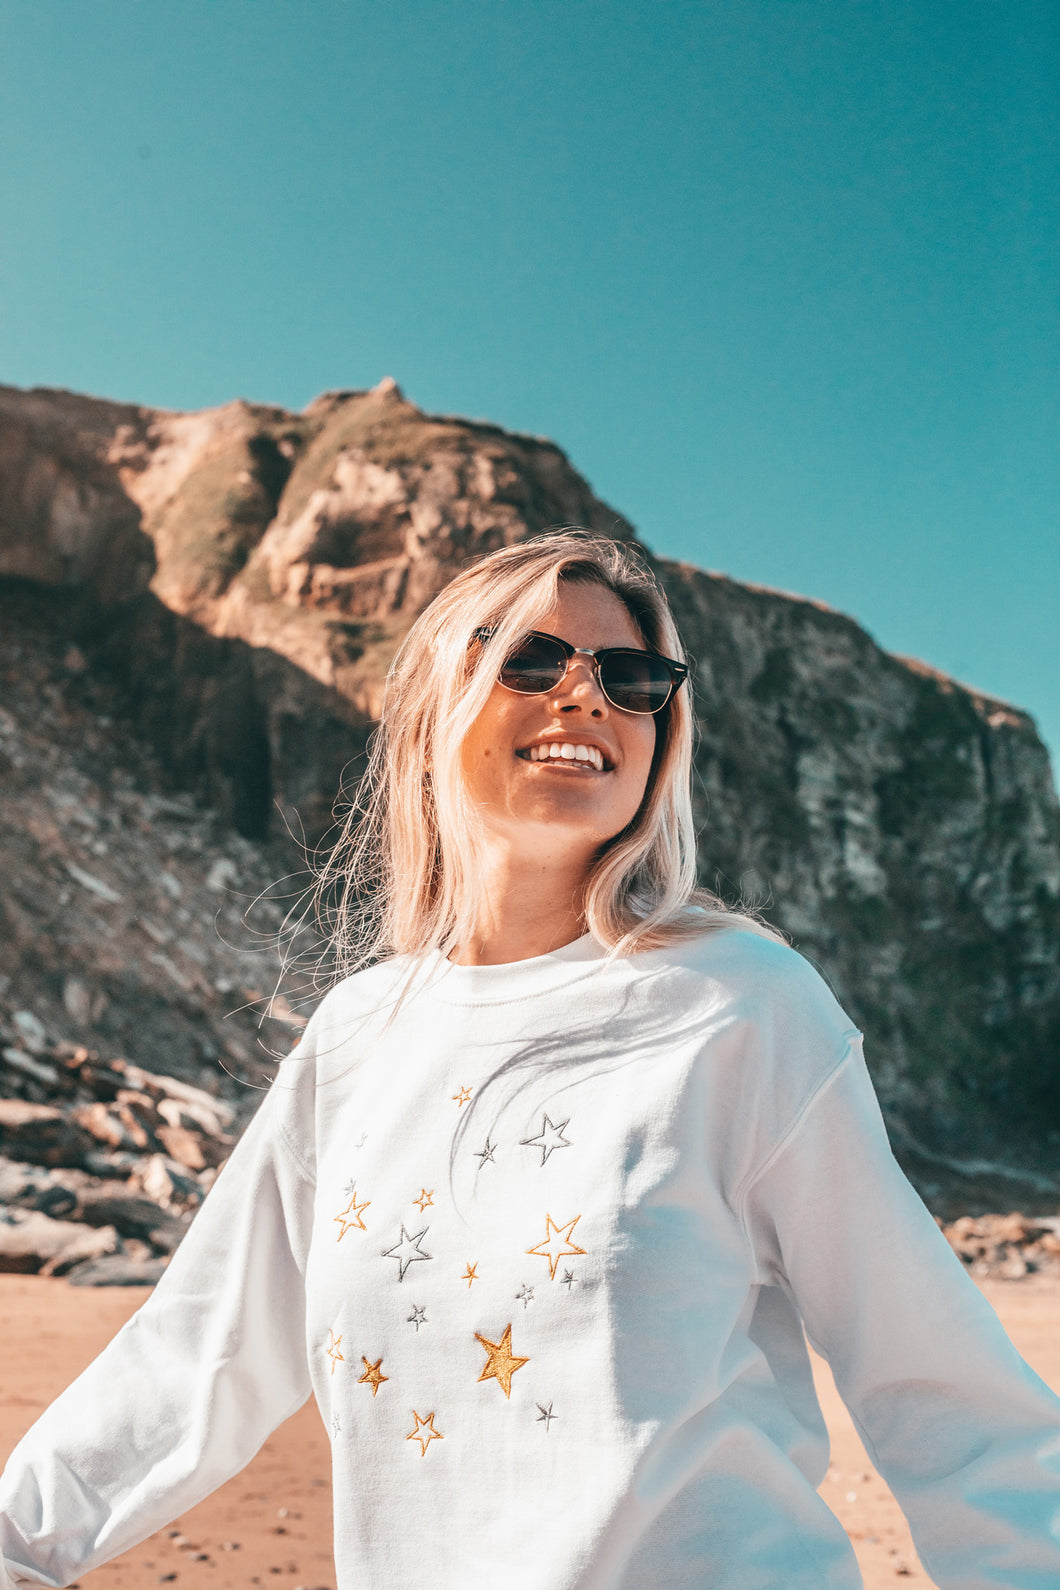 Metallic Star embroidered sweater